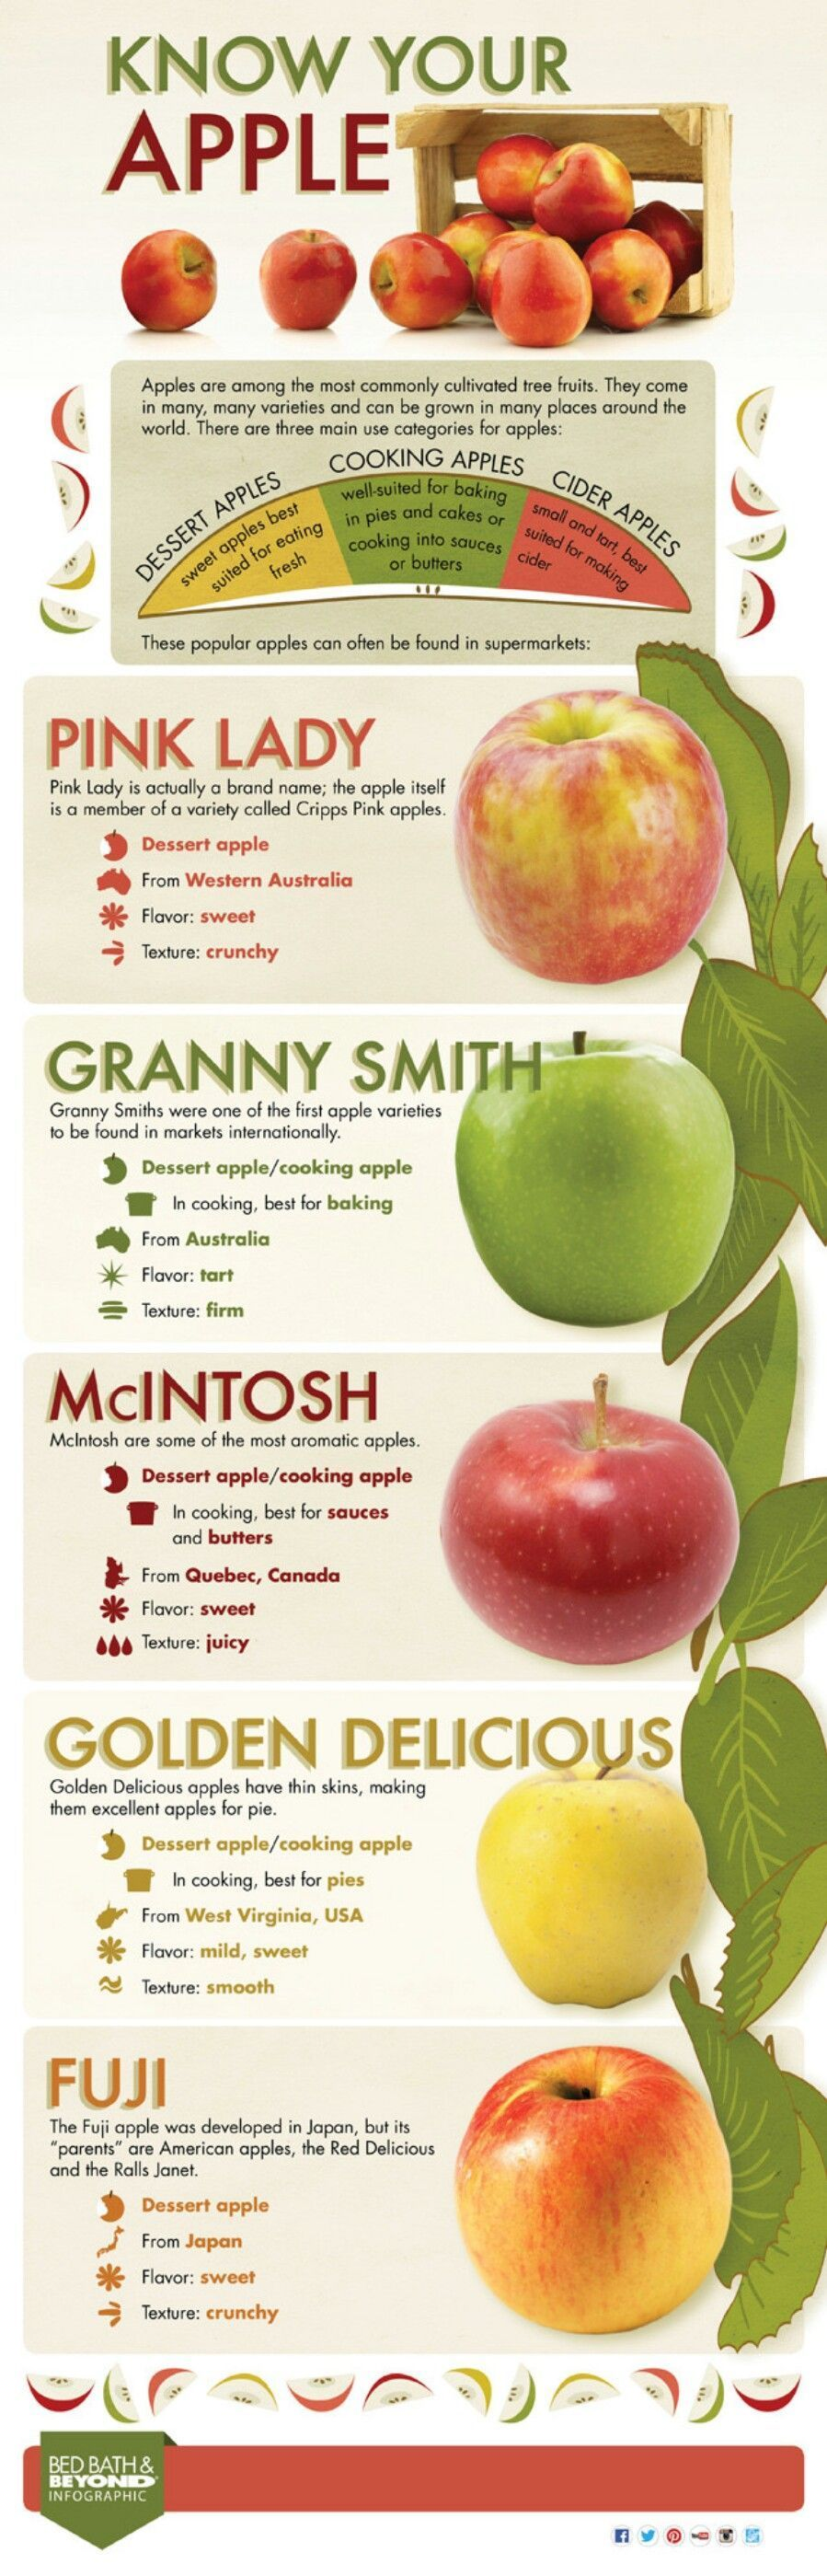 Know Your Apple